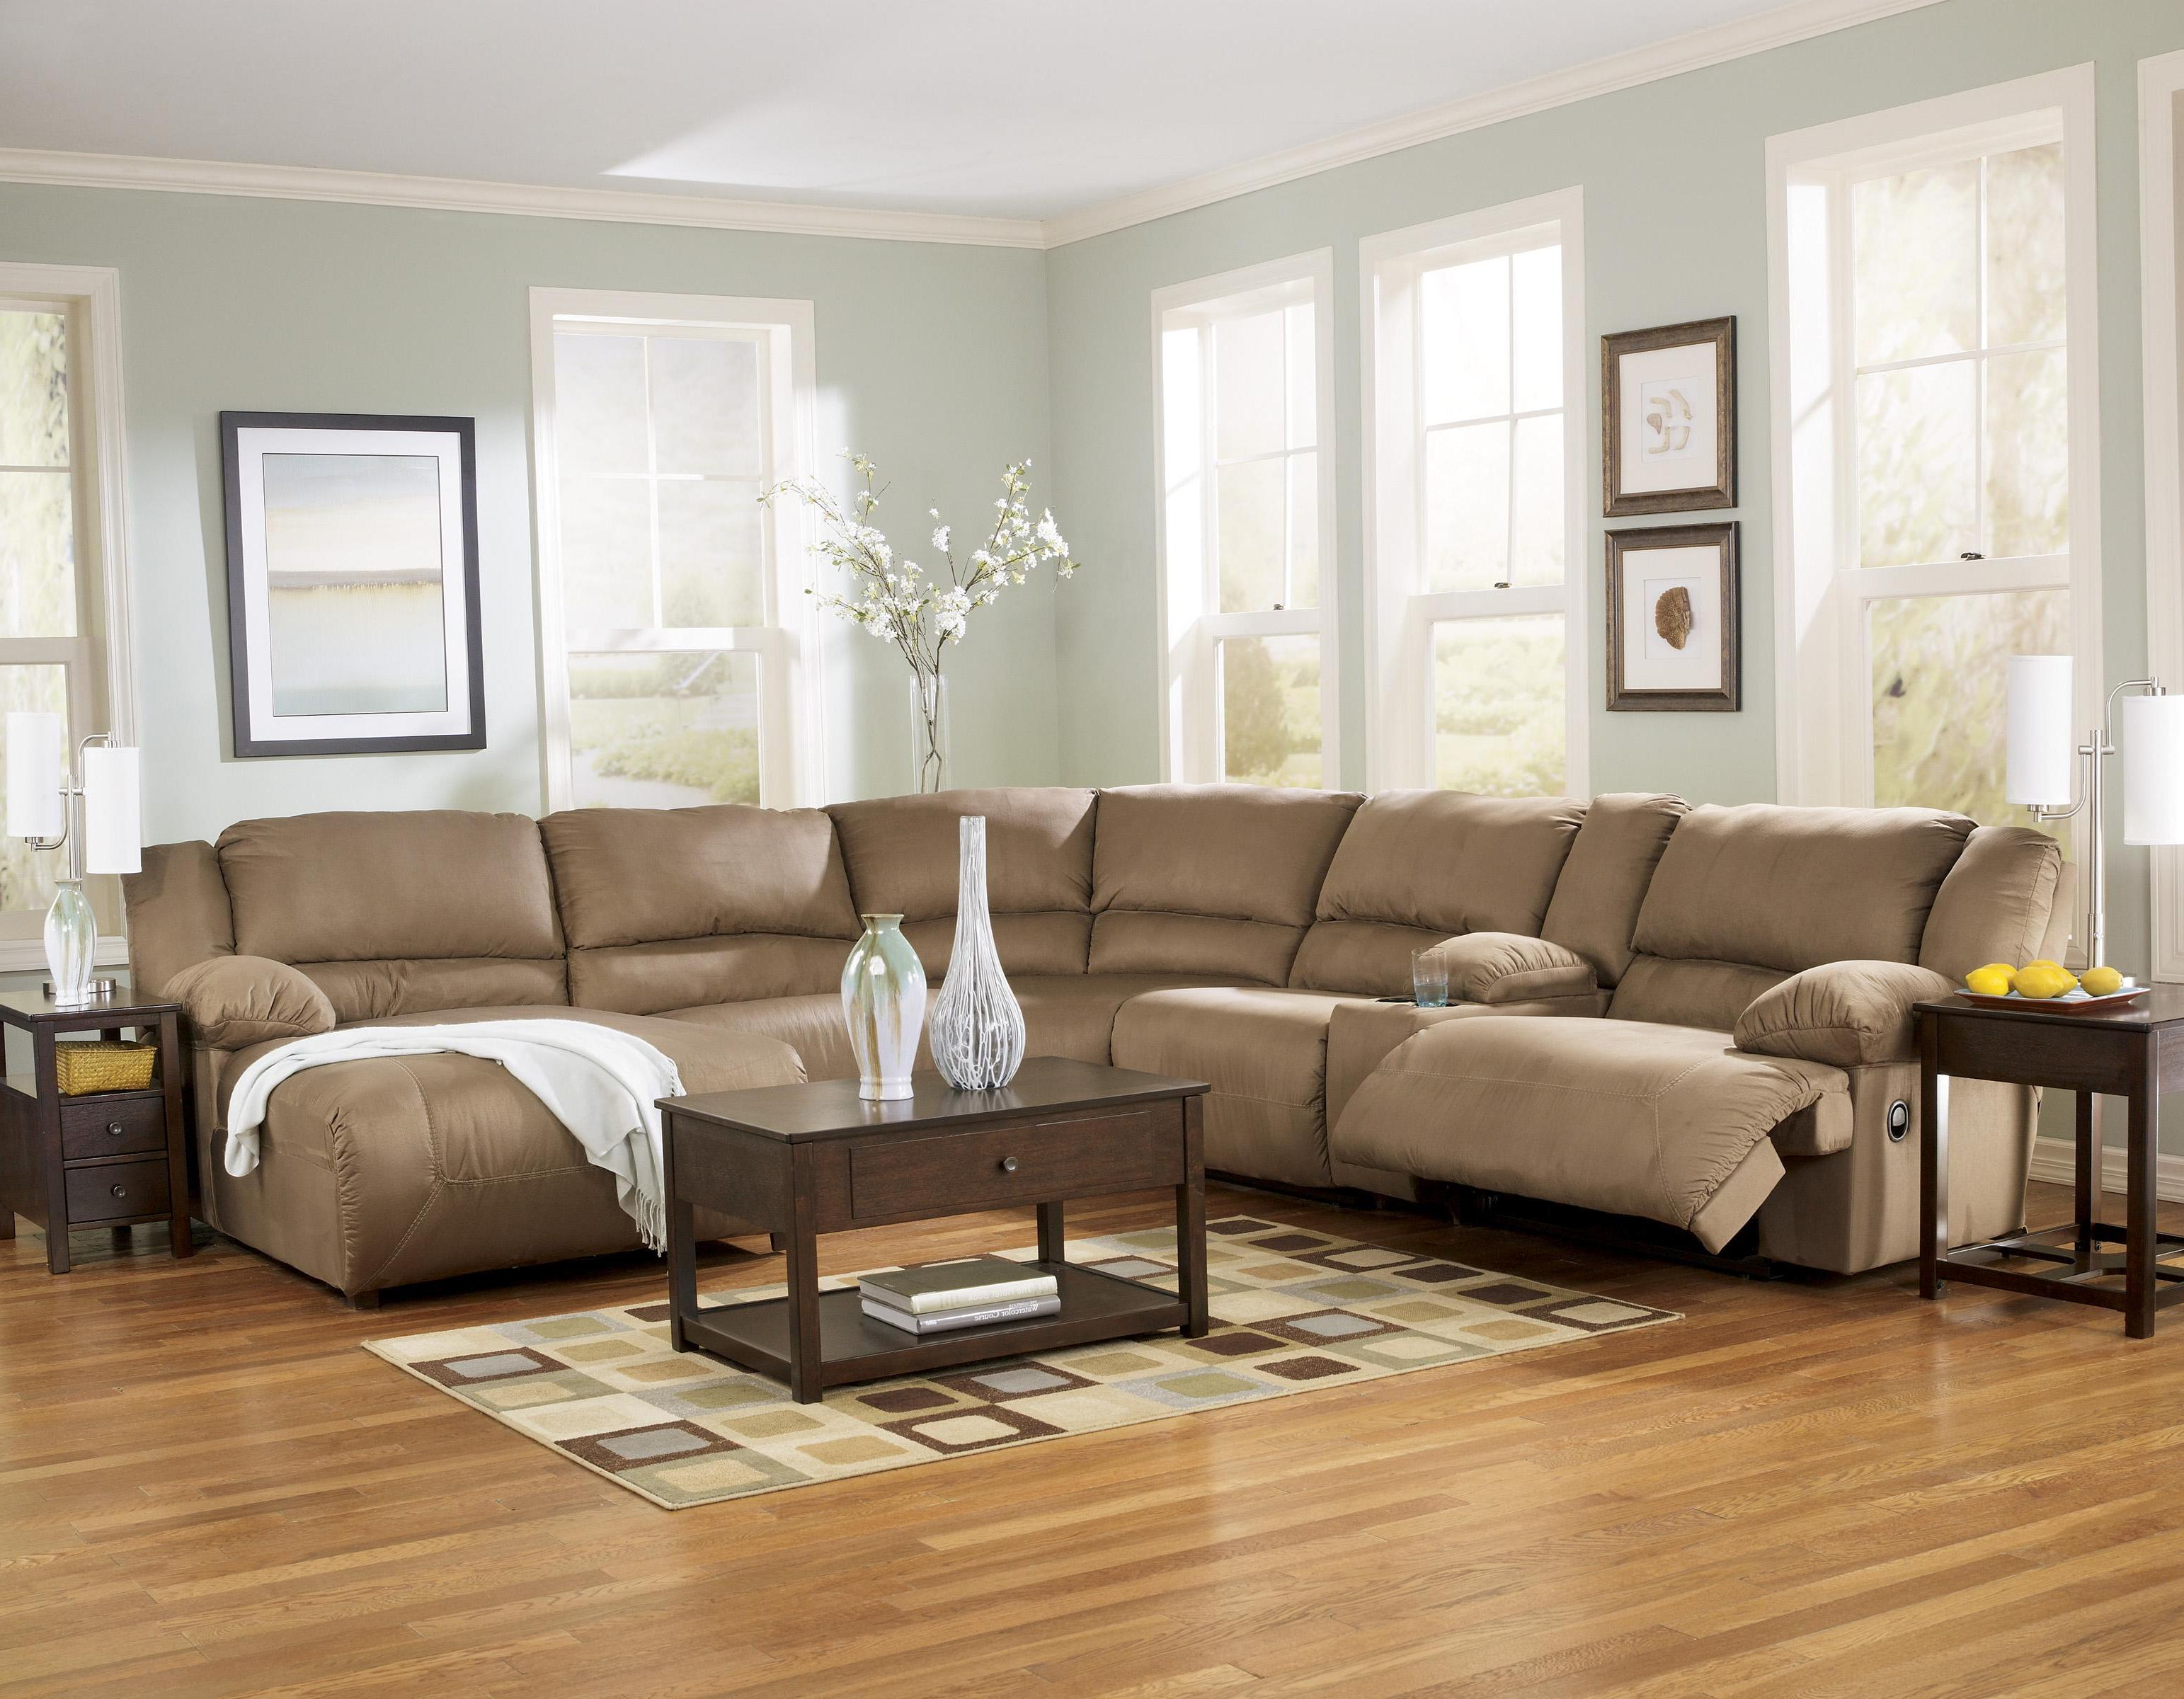 Living room furniture arrangement with sectional sofa - 6 Piece Sectional Sofa Group